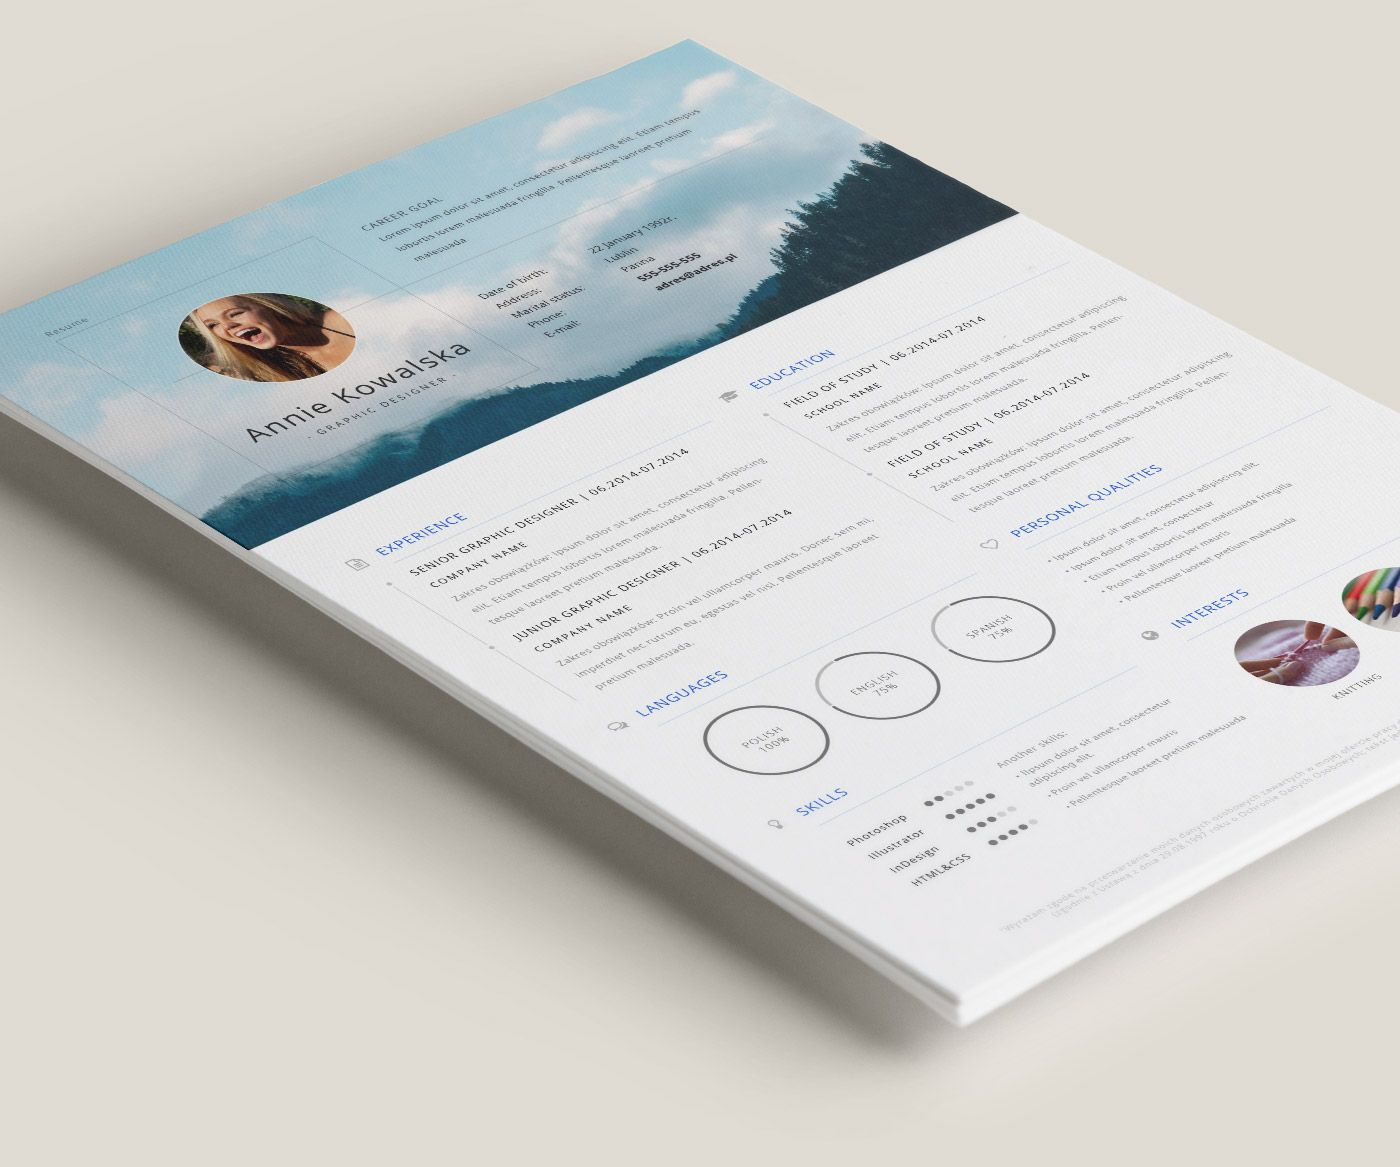 Free Resume To Download And Edit Darmowe Cv Do Sciagniecia I Edycji Graphic Resume Graphic Design Resume Best Resume Template